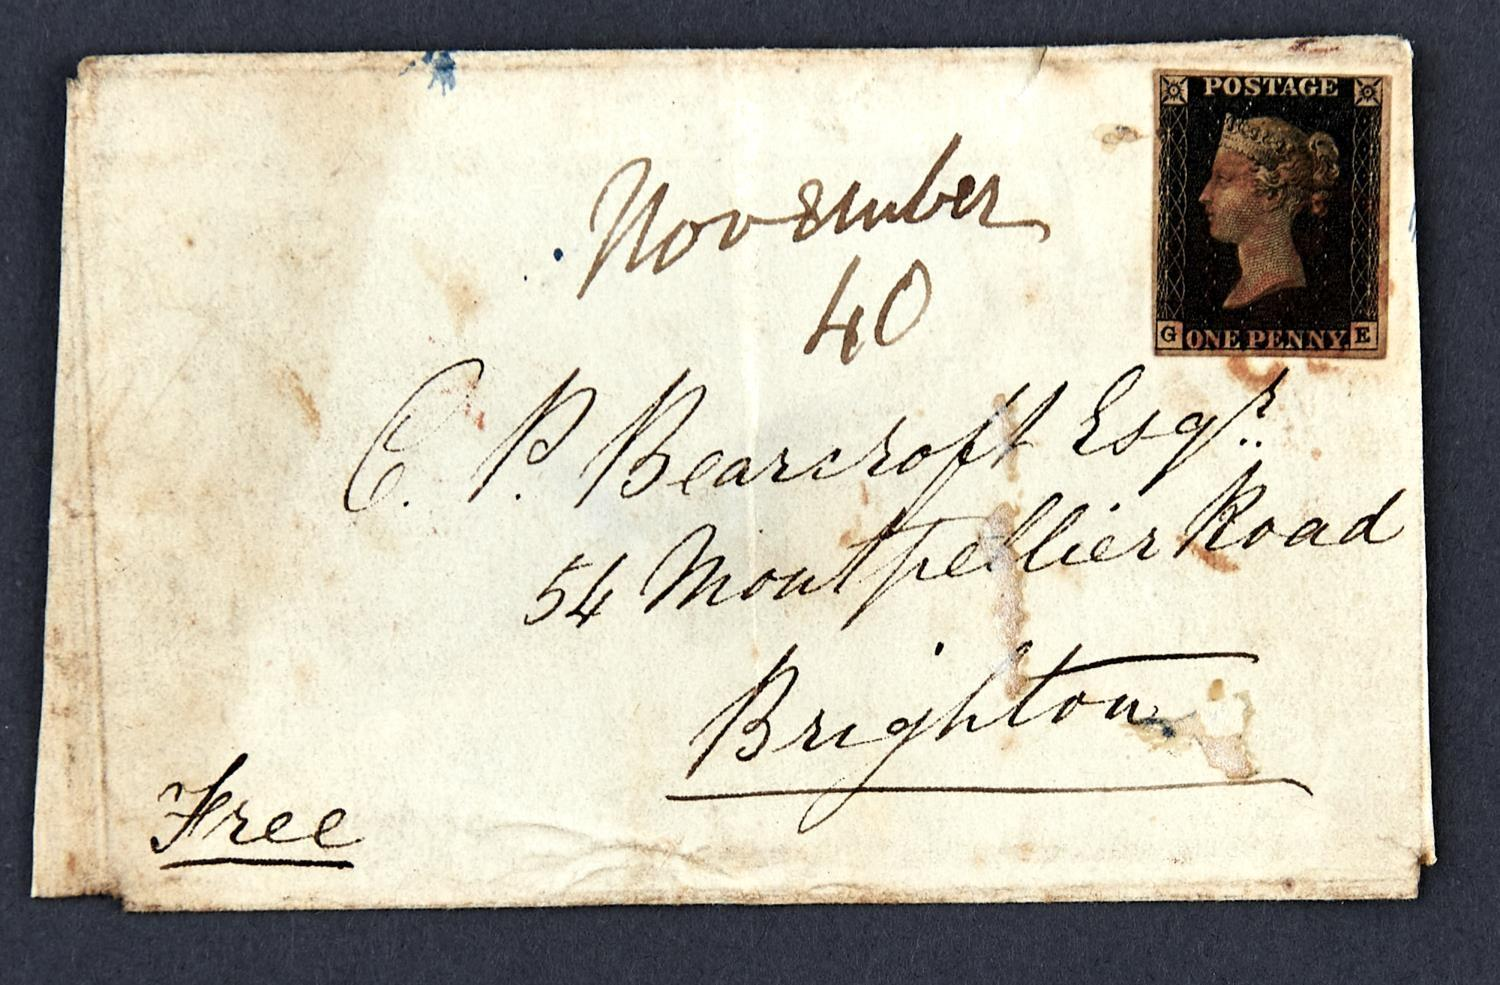 GREAT BRITAIN1840 1d black plate 6 GE used on envelope (faults) from Leominster to Brighton dated